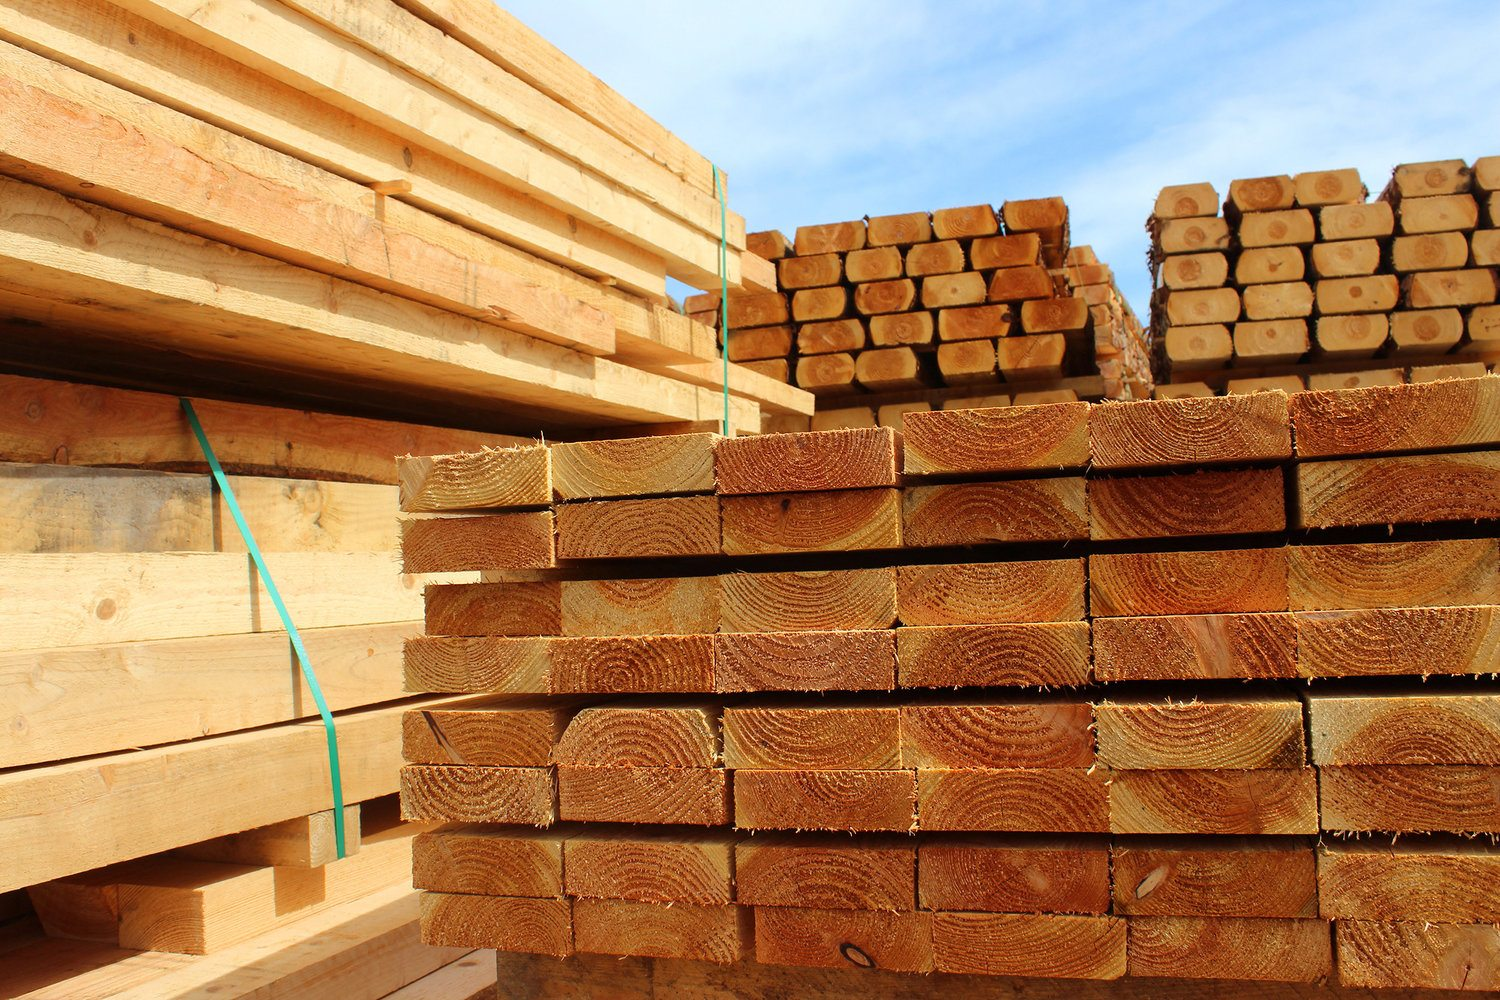 Dimensional Lumber & Building Supplies Chilliwack